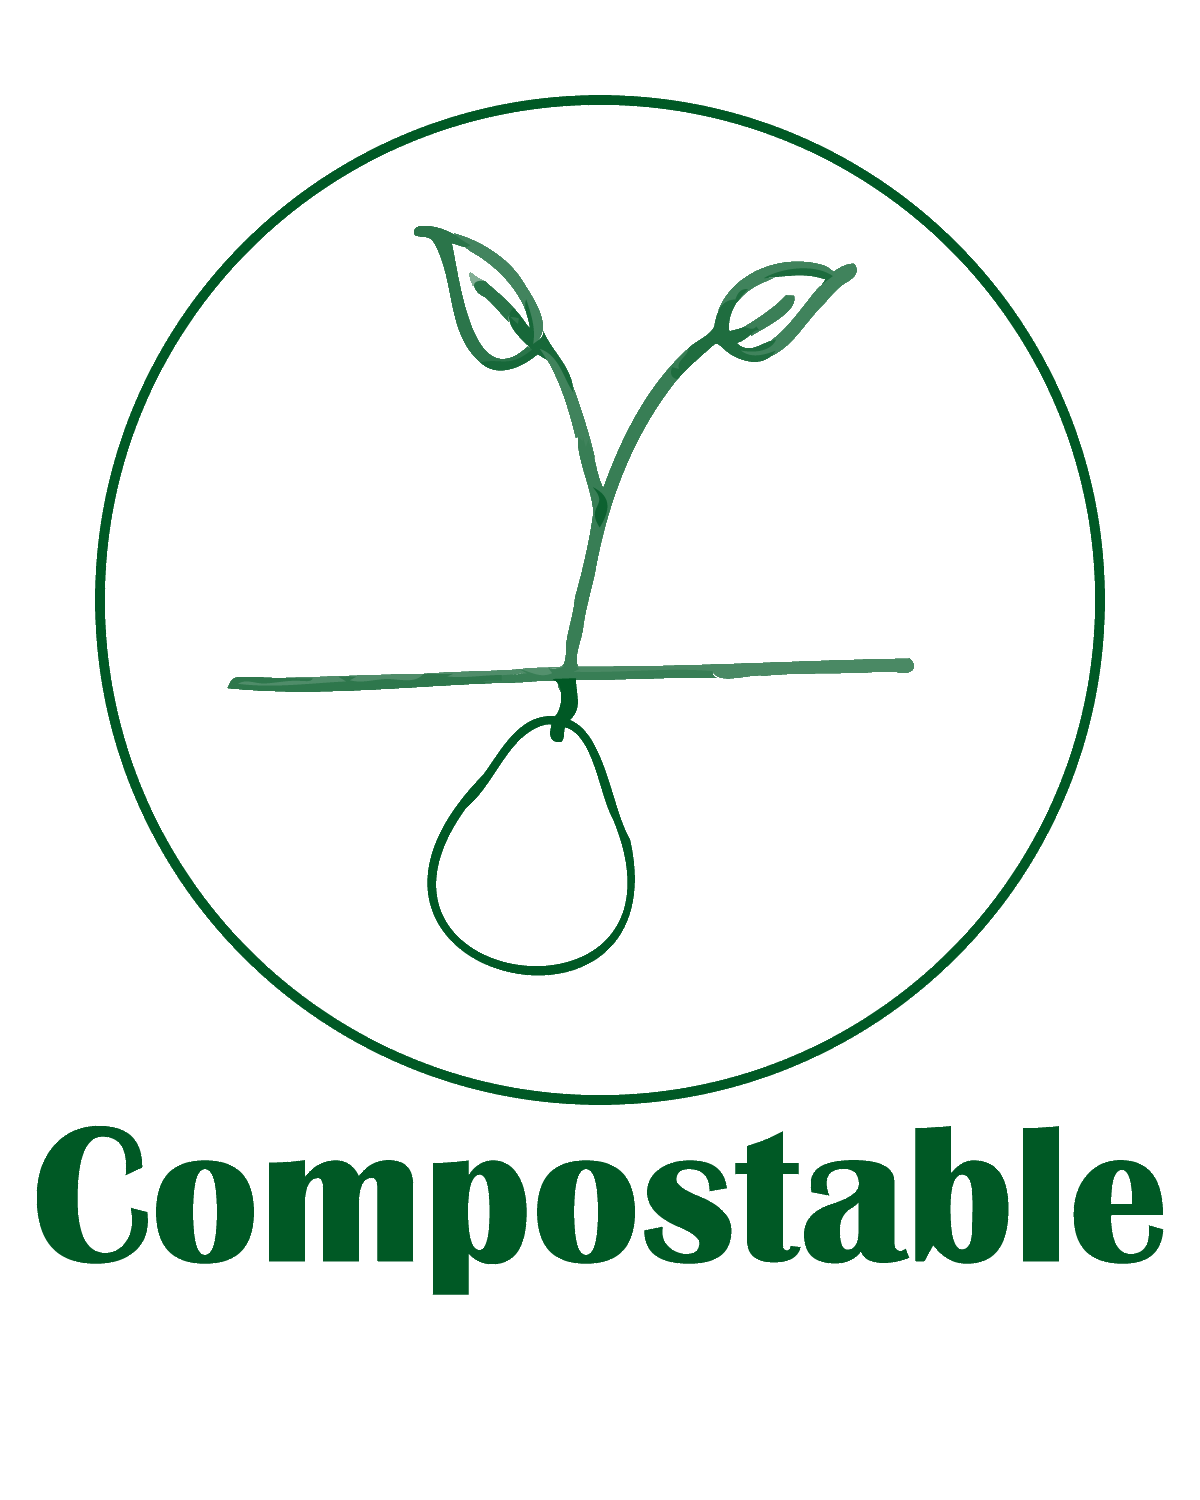 The Green Bundle Compostable Logo